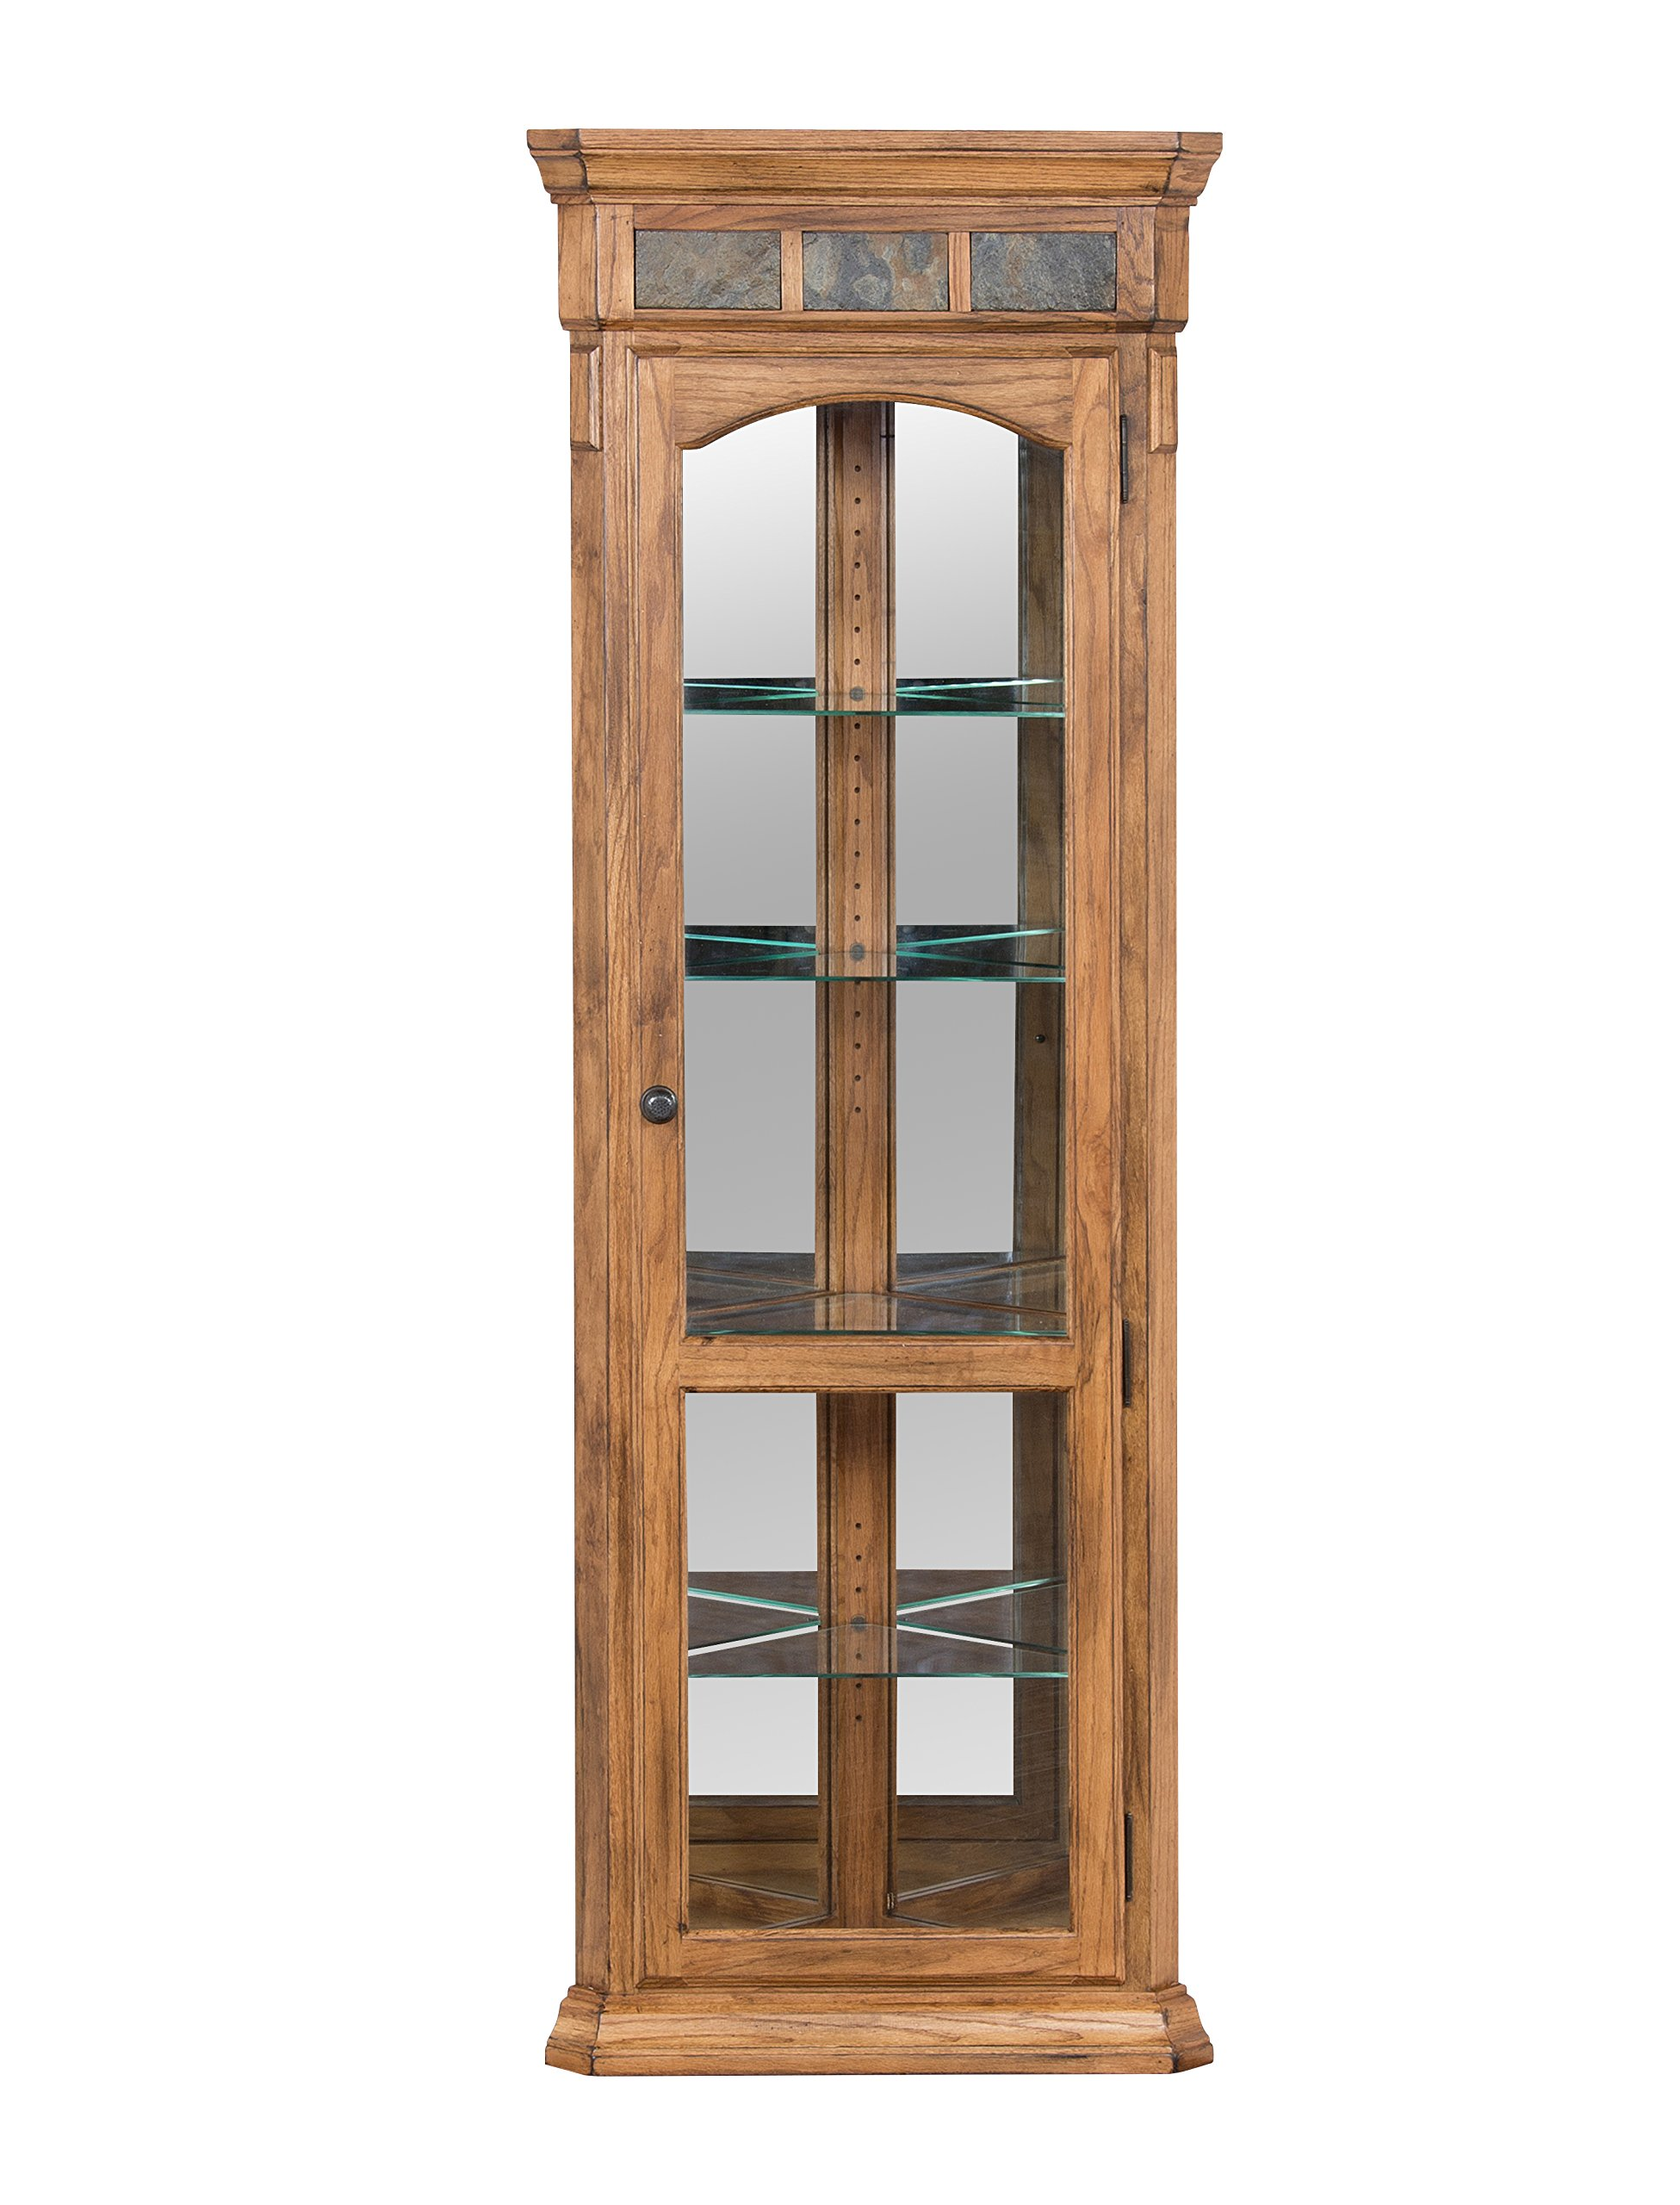 shelf oak glass cabinets curio with light corner lighted for mahogany cabinet near doors small furniture single white buy sale antique asian display me curios